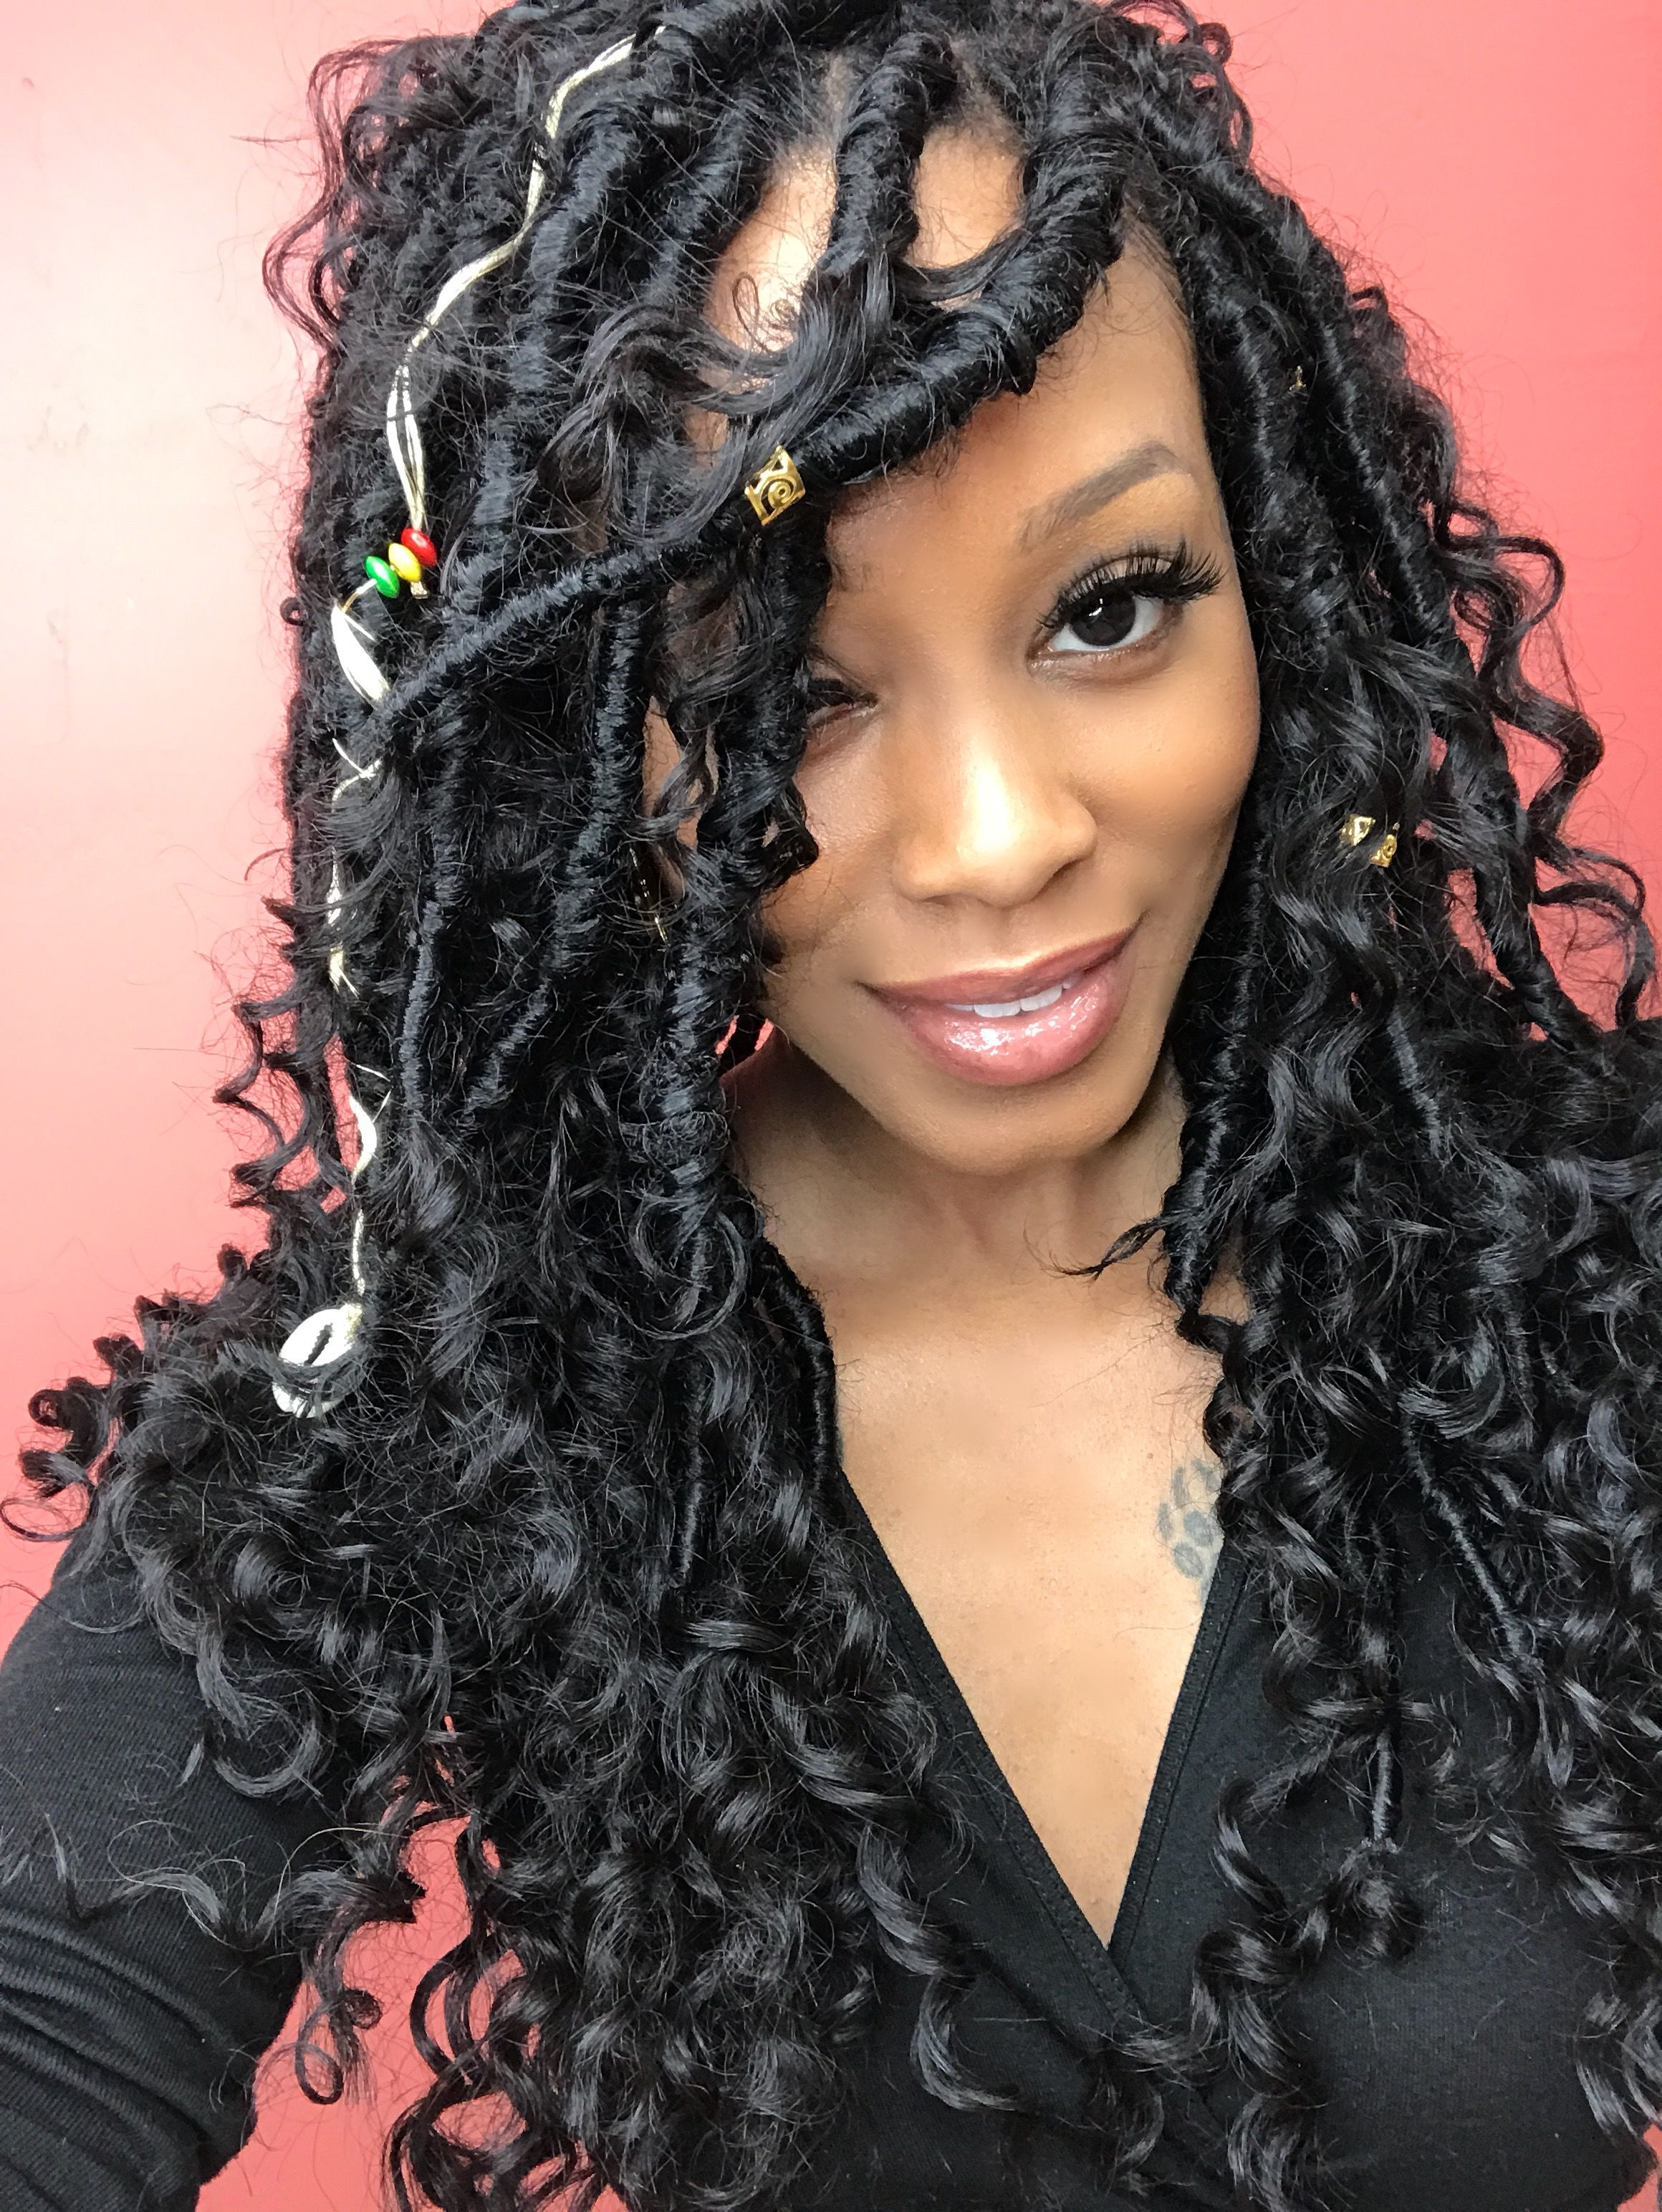 Want A Faux Locs Style Thats Soft Flowing And Natural Looking Check Out Our Goddess Styles Tutorials For Bohemian Inspired Protective